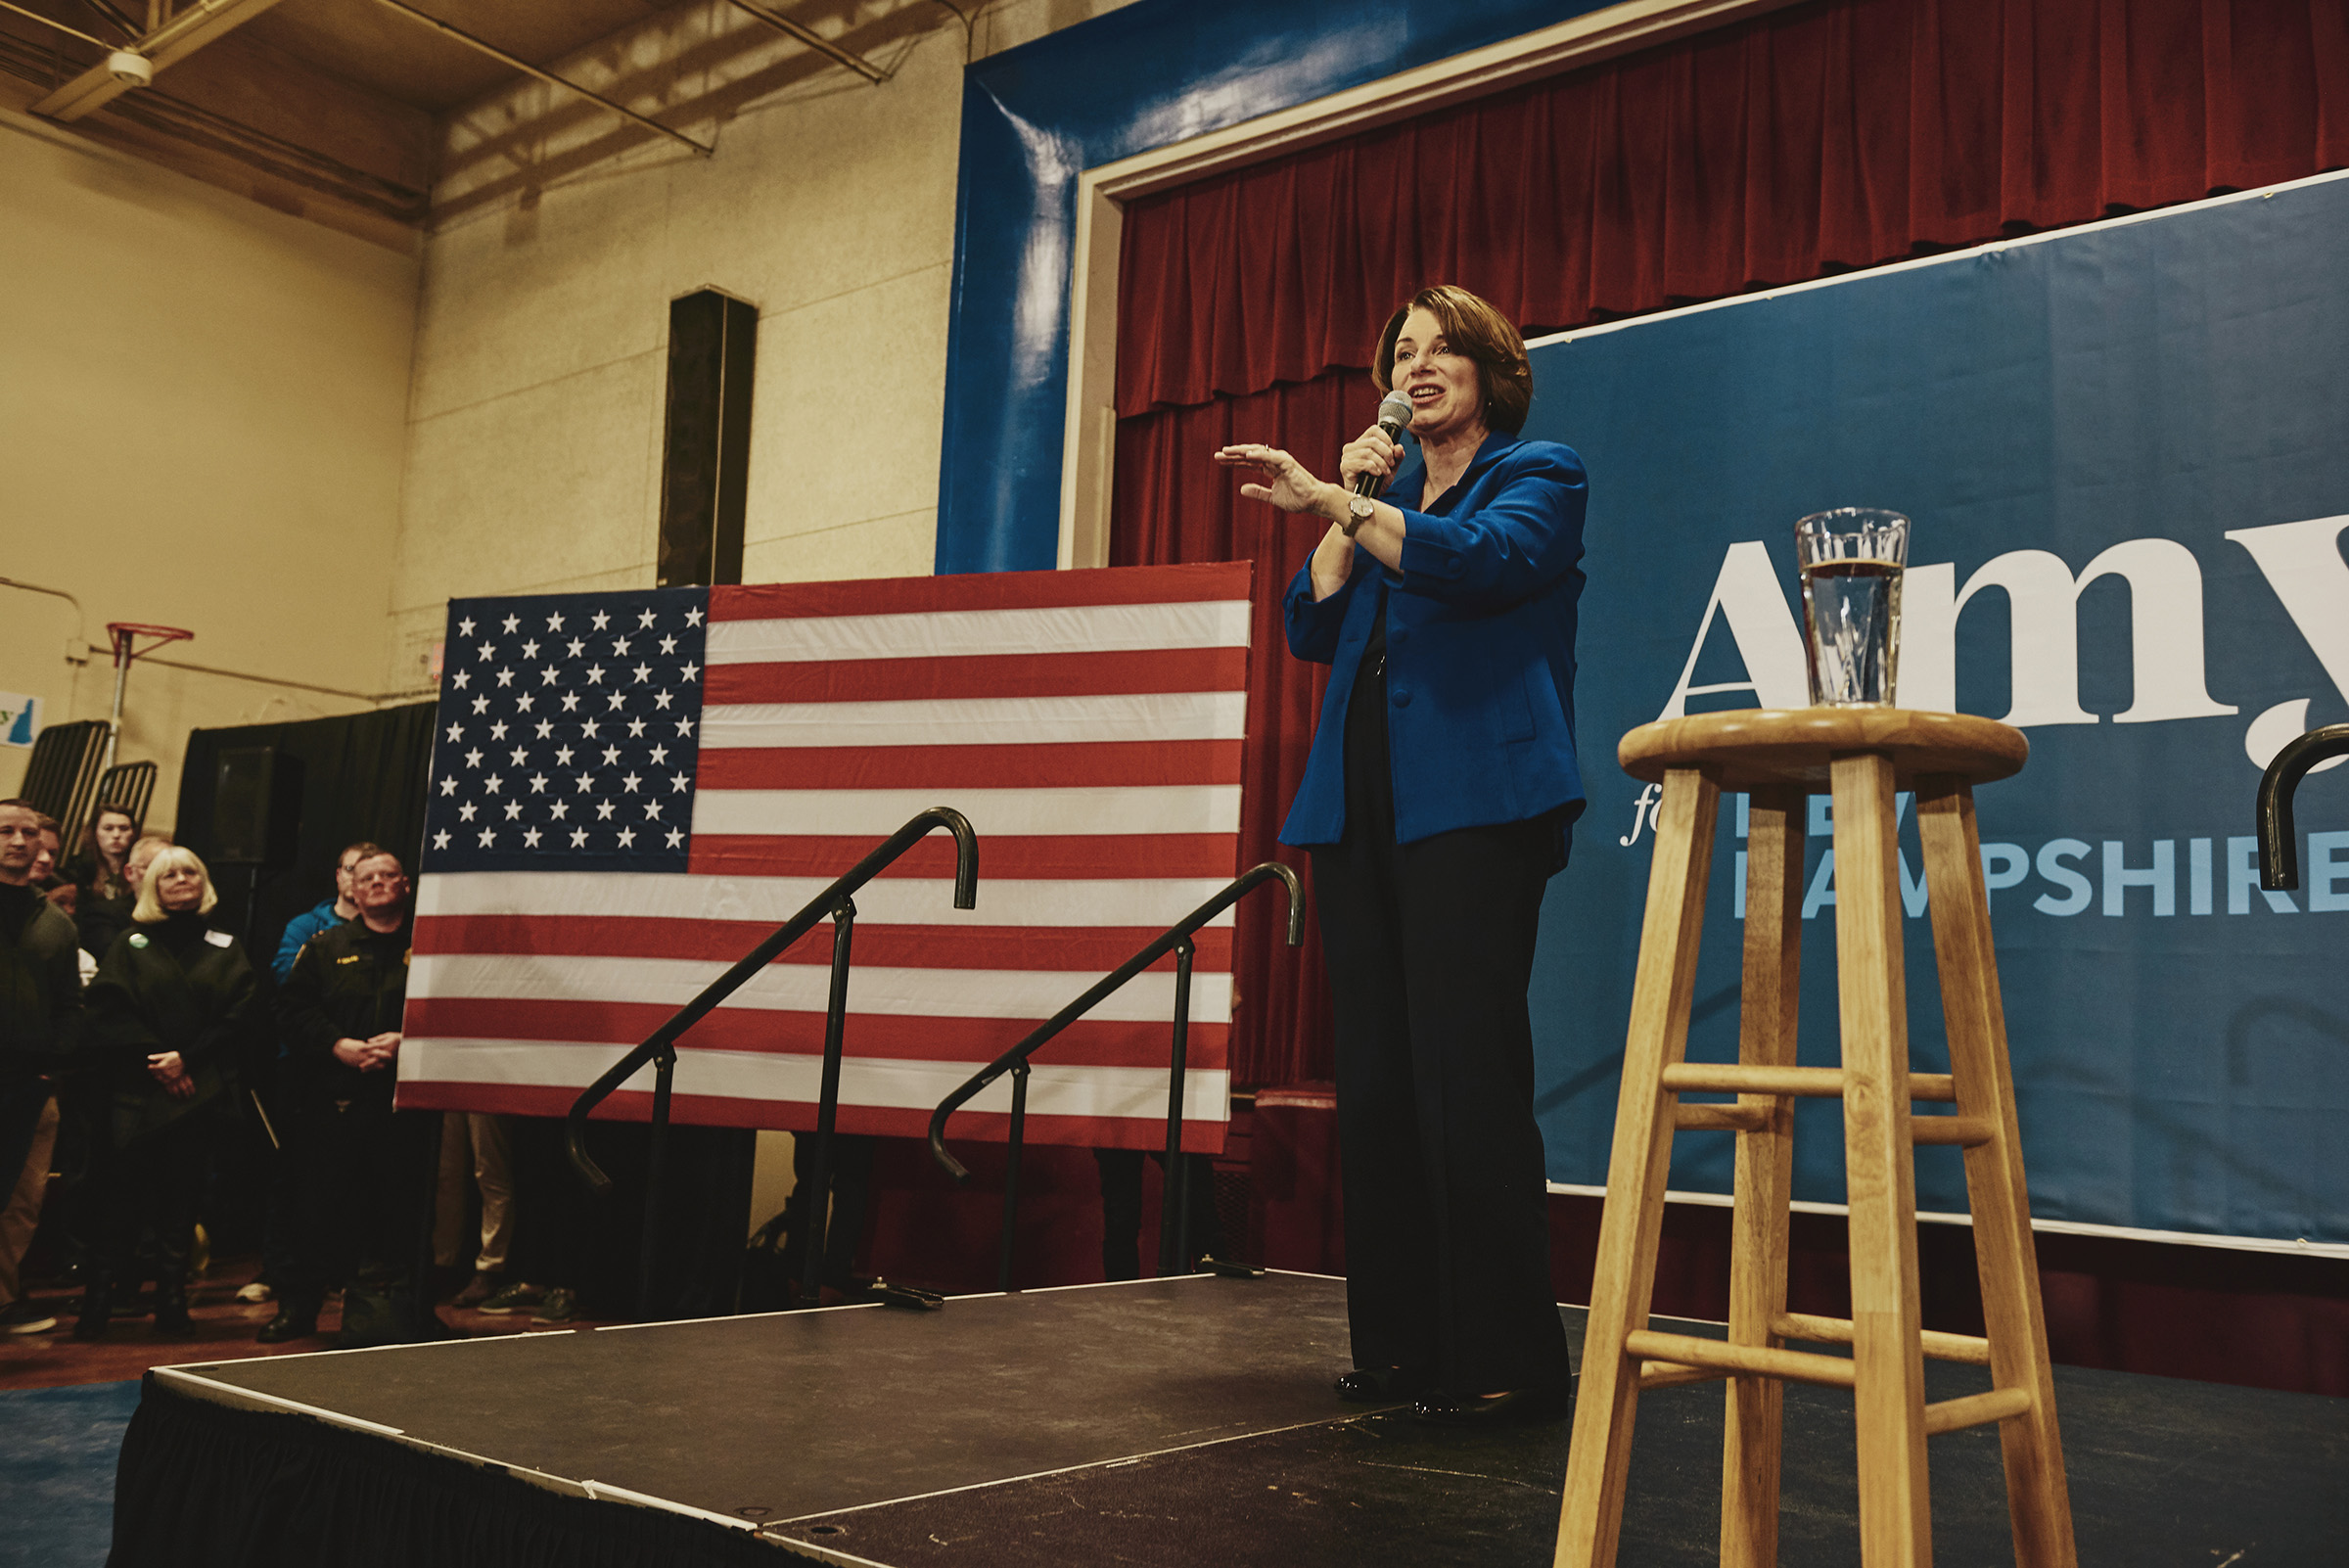 Sen. Amy Klobuchar speaks at her Salem GOTV event at the Woodbury School in Salem, N.H. on Feb. 9, 2020.